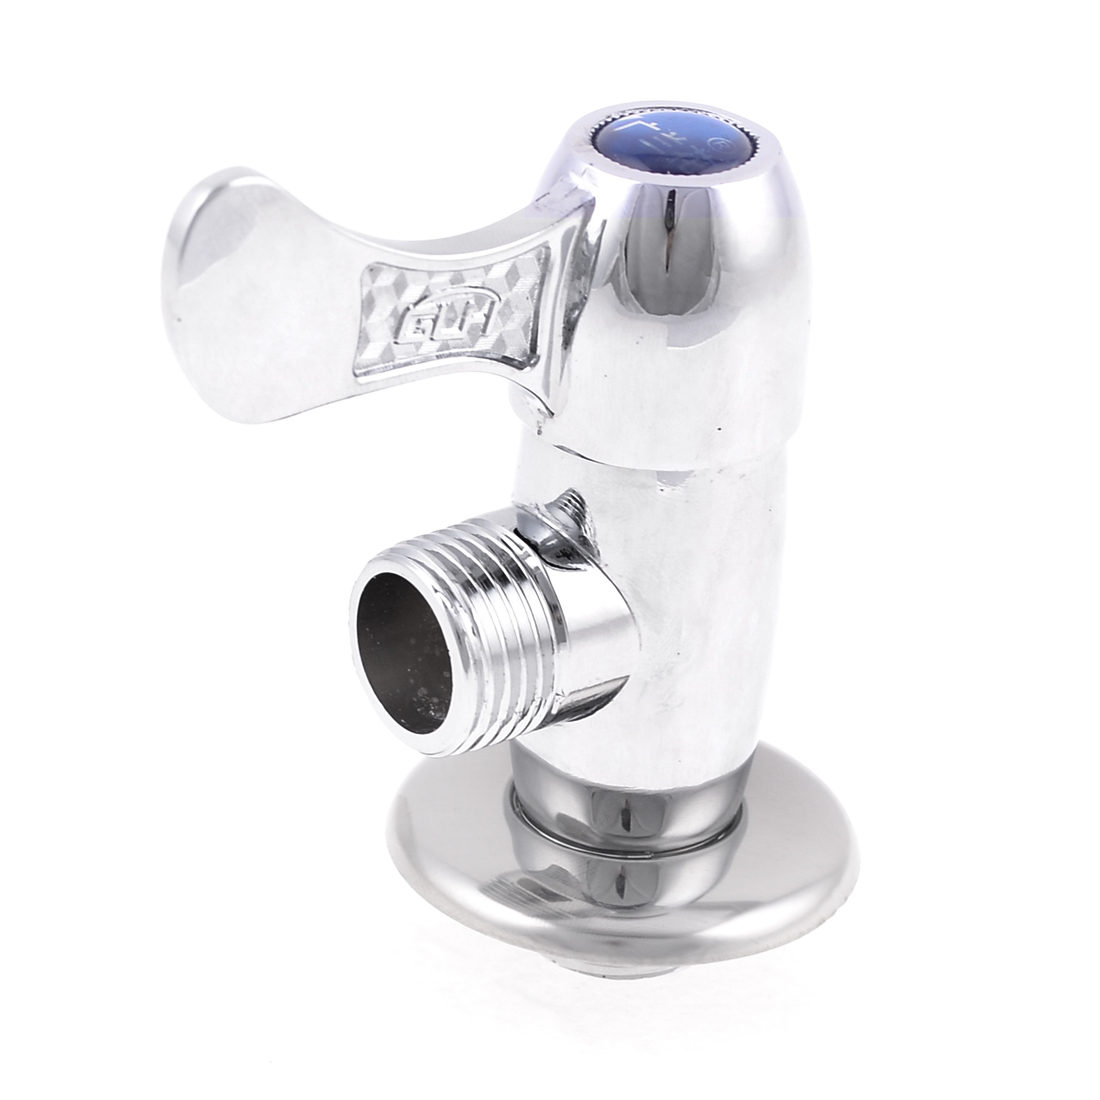 Kitchen 20mm Threaded Chrome Plated Brass Angle Stop Valve